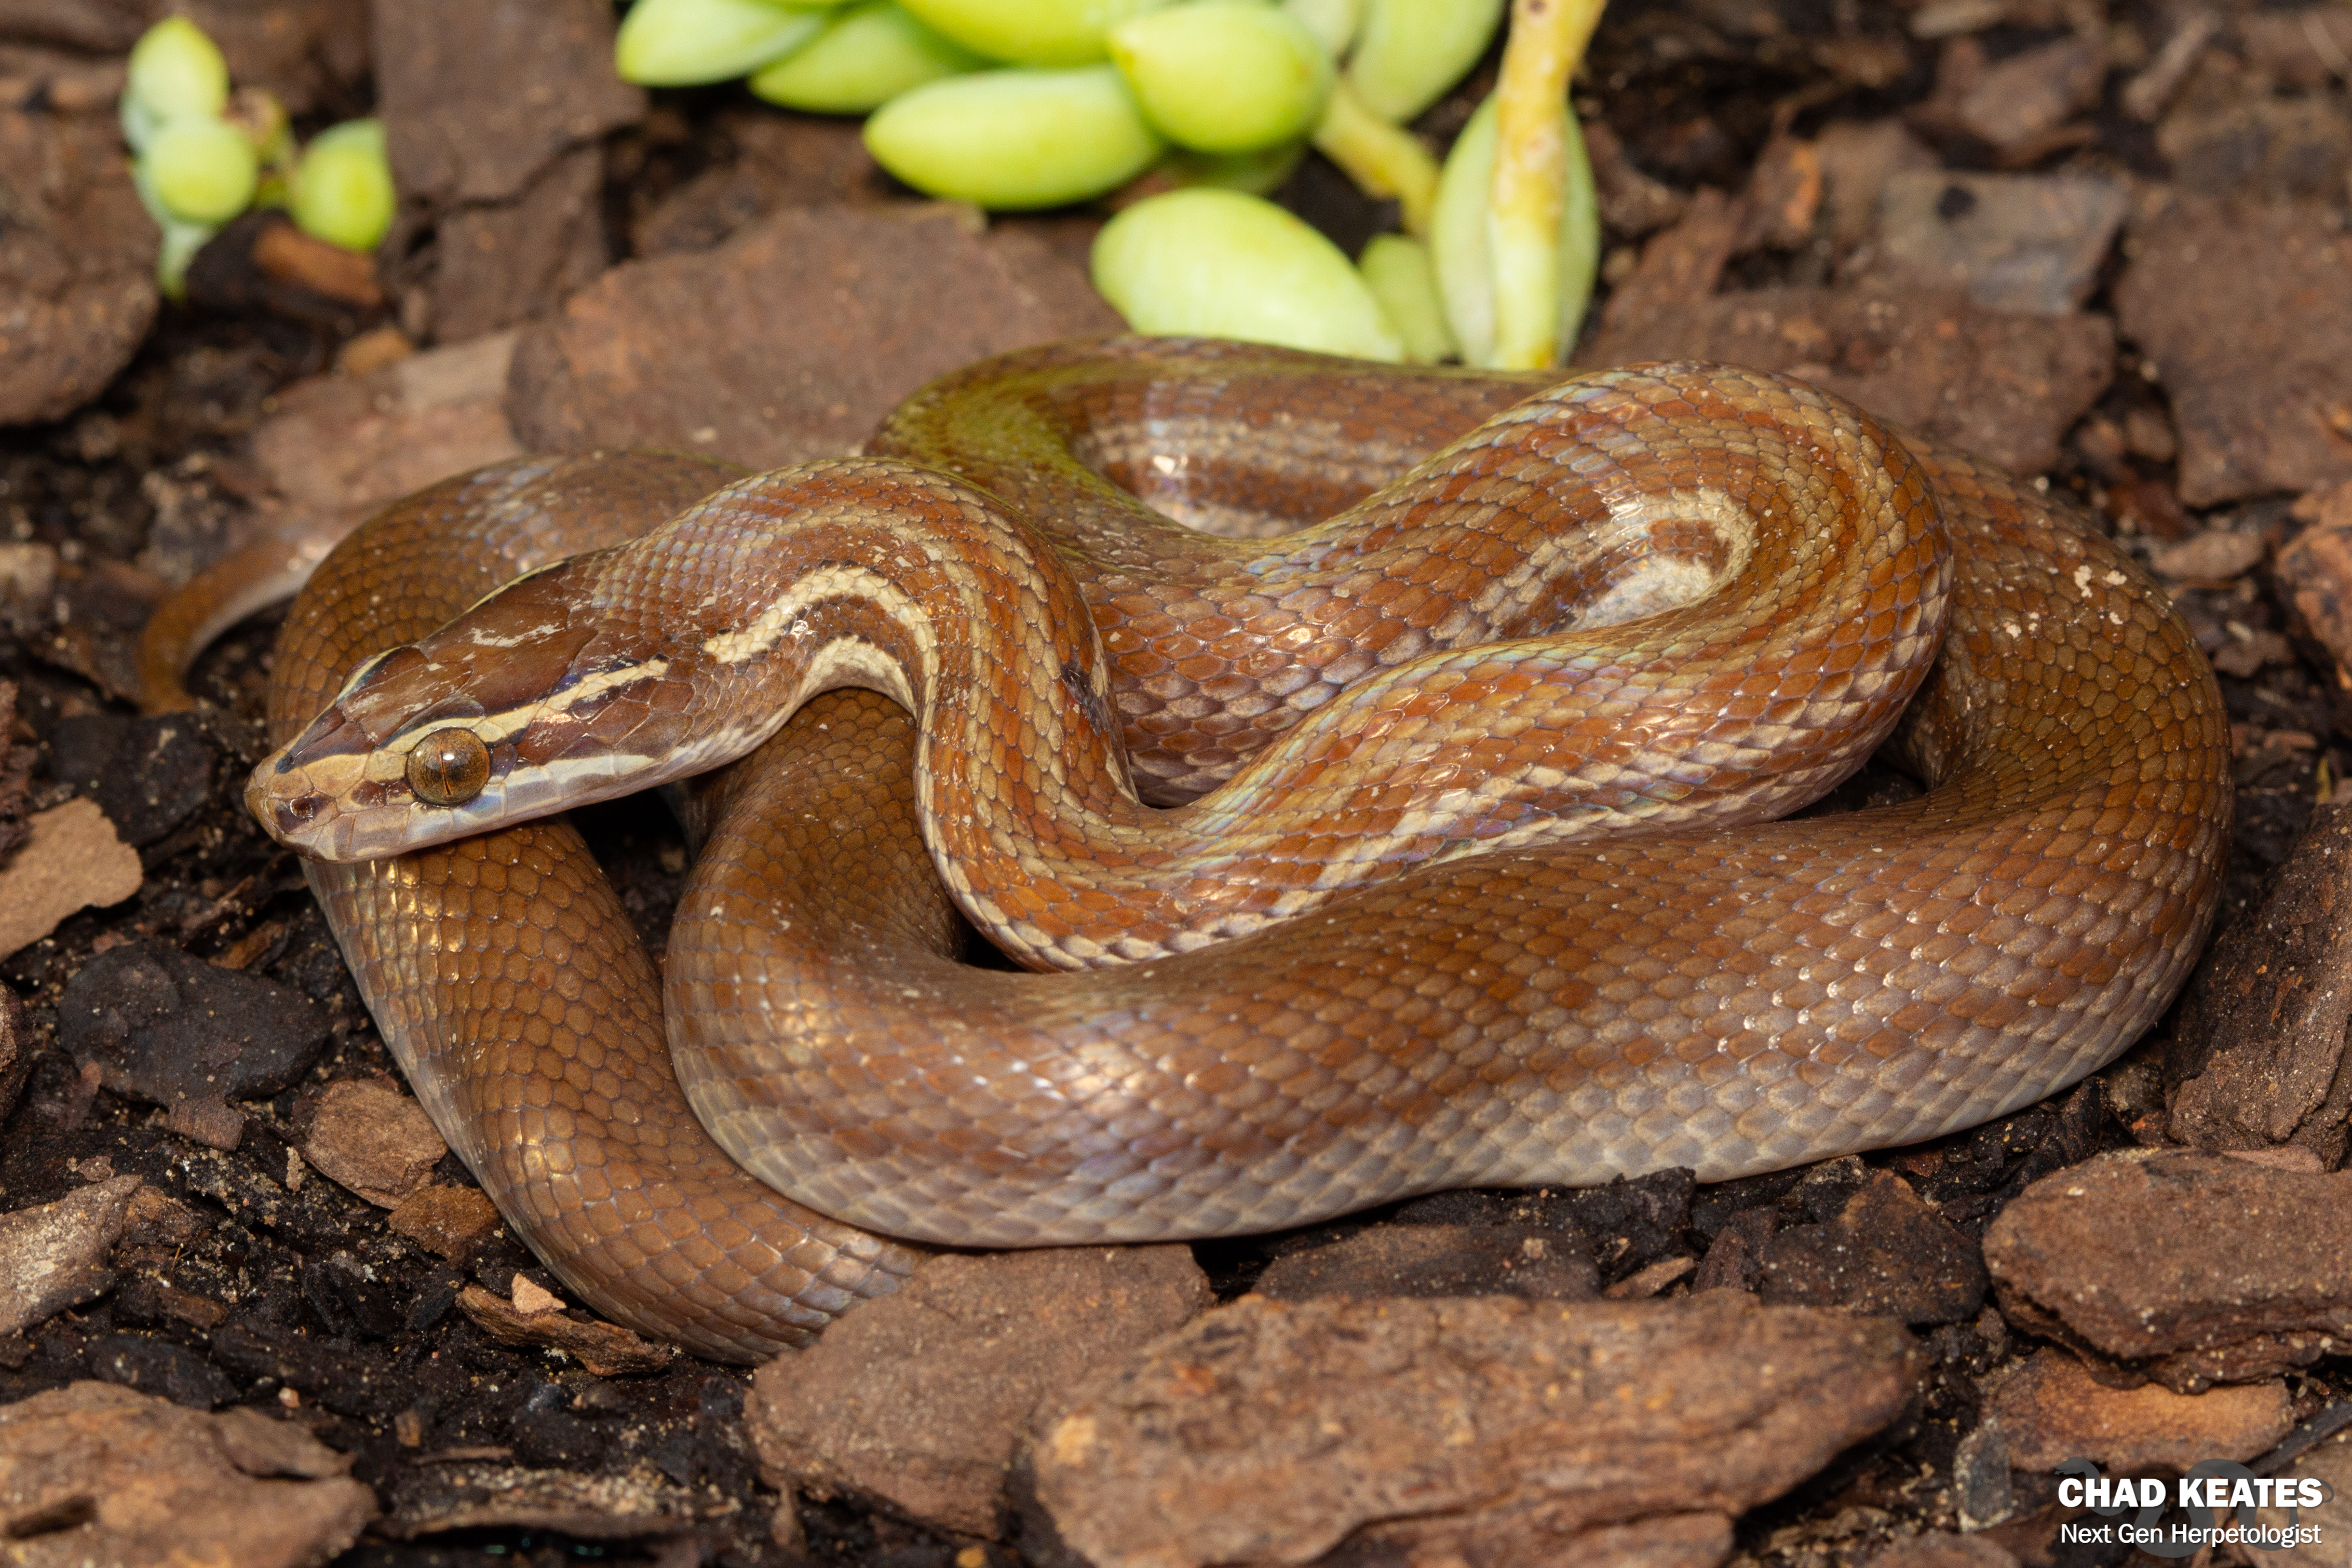 Brown House Snake Snake_Boaedon capensis_Grahamstown_EC_Chad Keates_2019 (2)